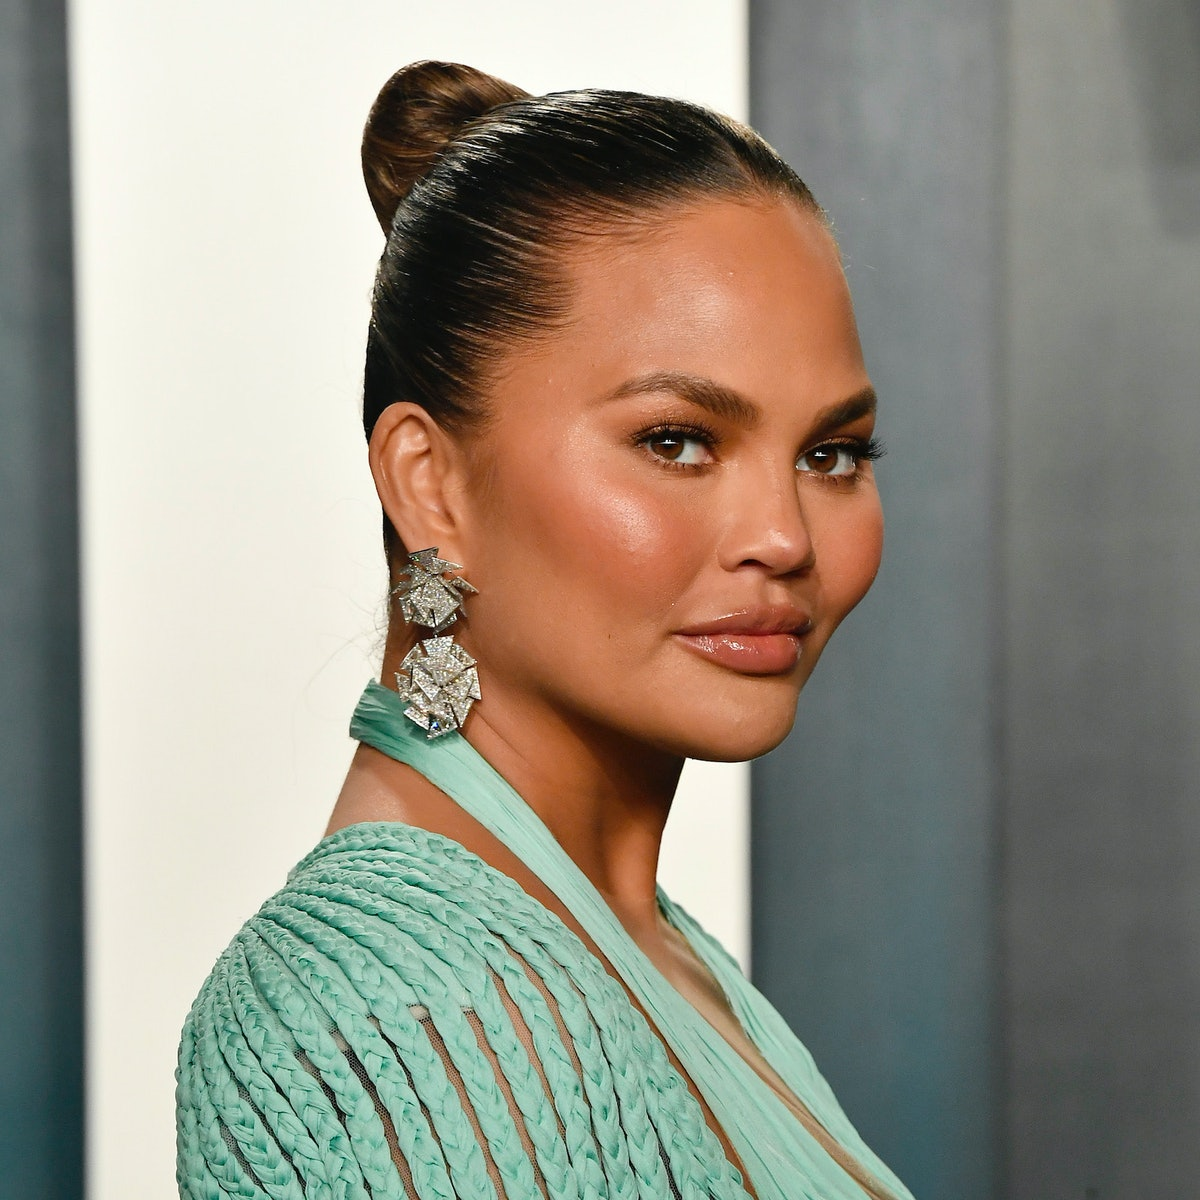 Chrissy Teigen joined a boycott against Goya Foods after the CEO praised President Trump.